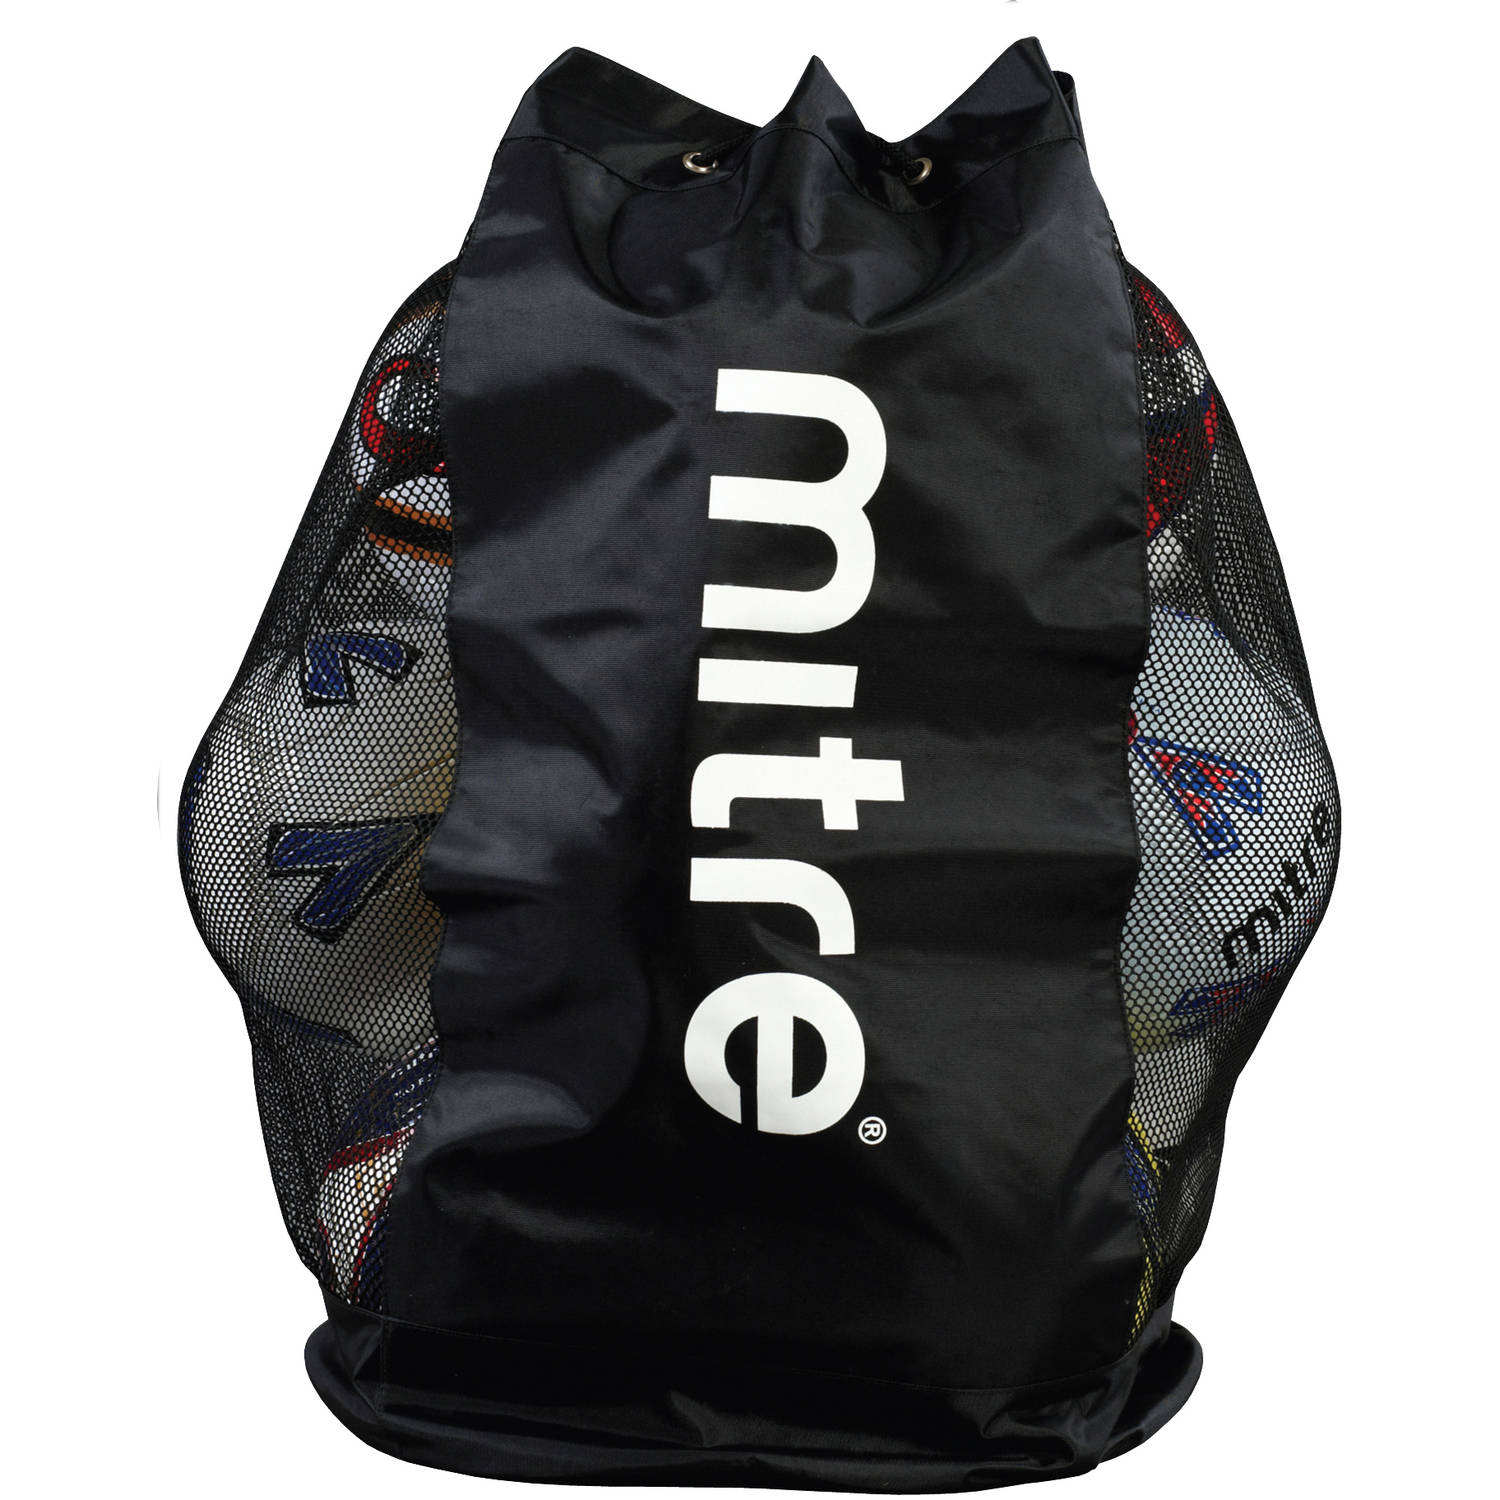 Mitre Nylon/Mesh Soccer Ball Bag